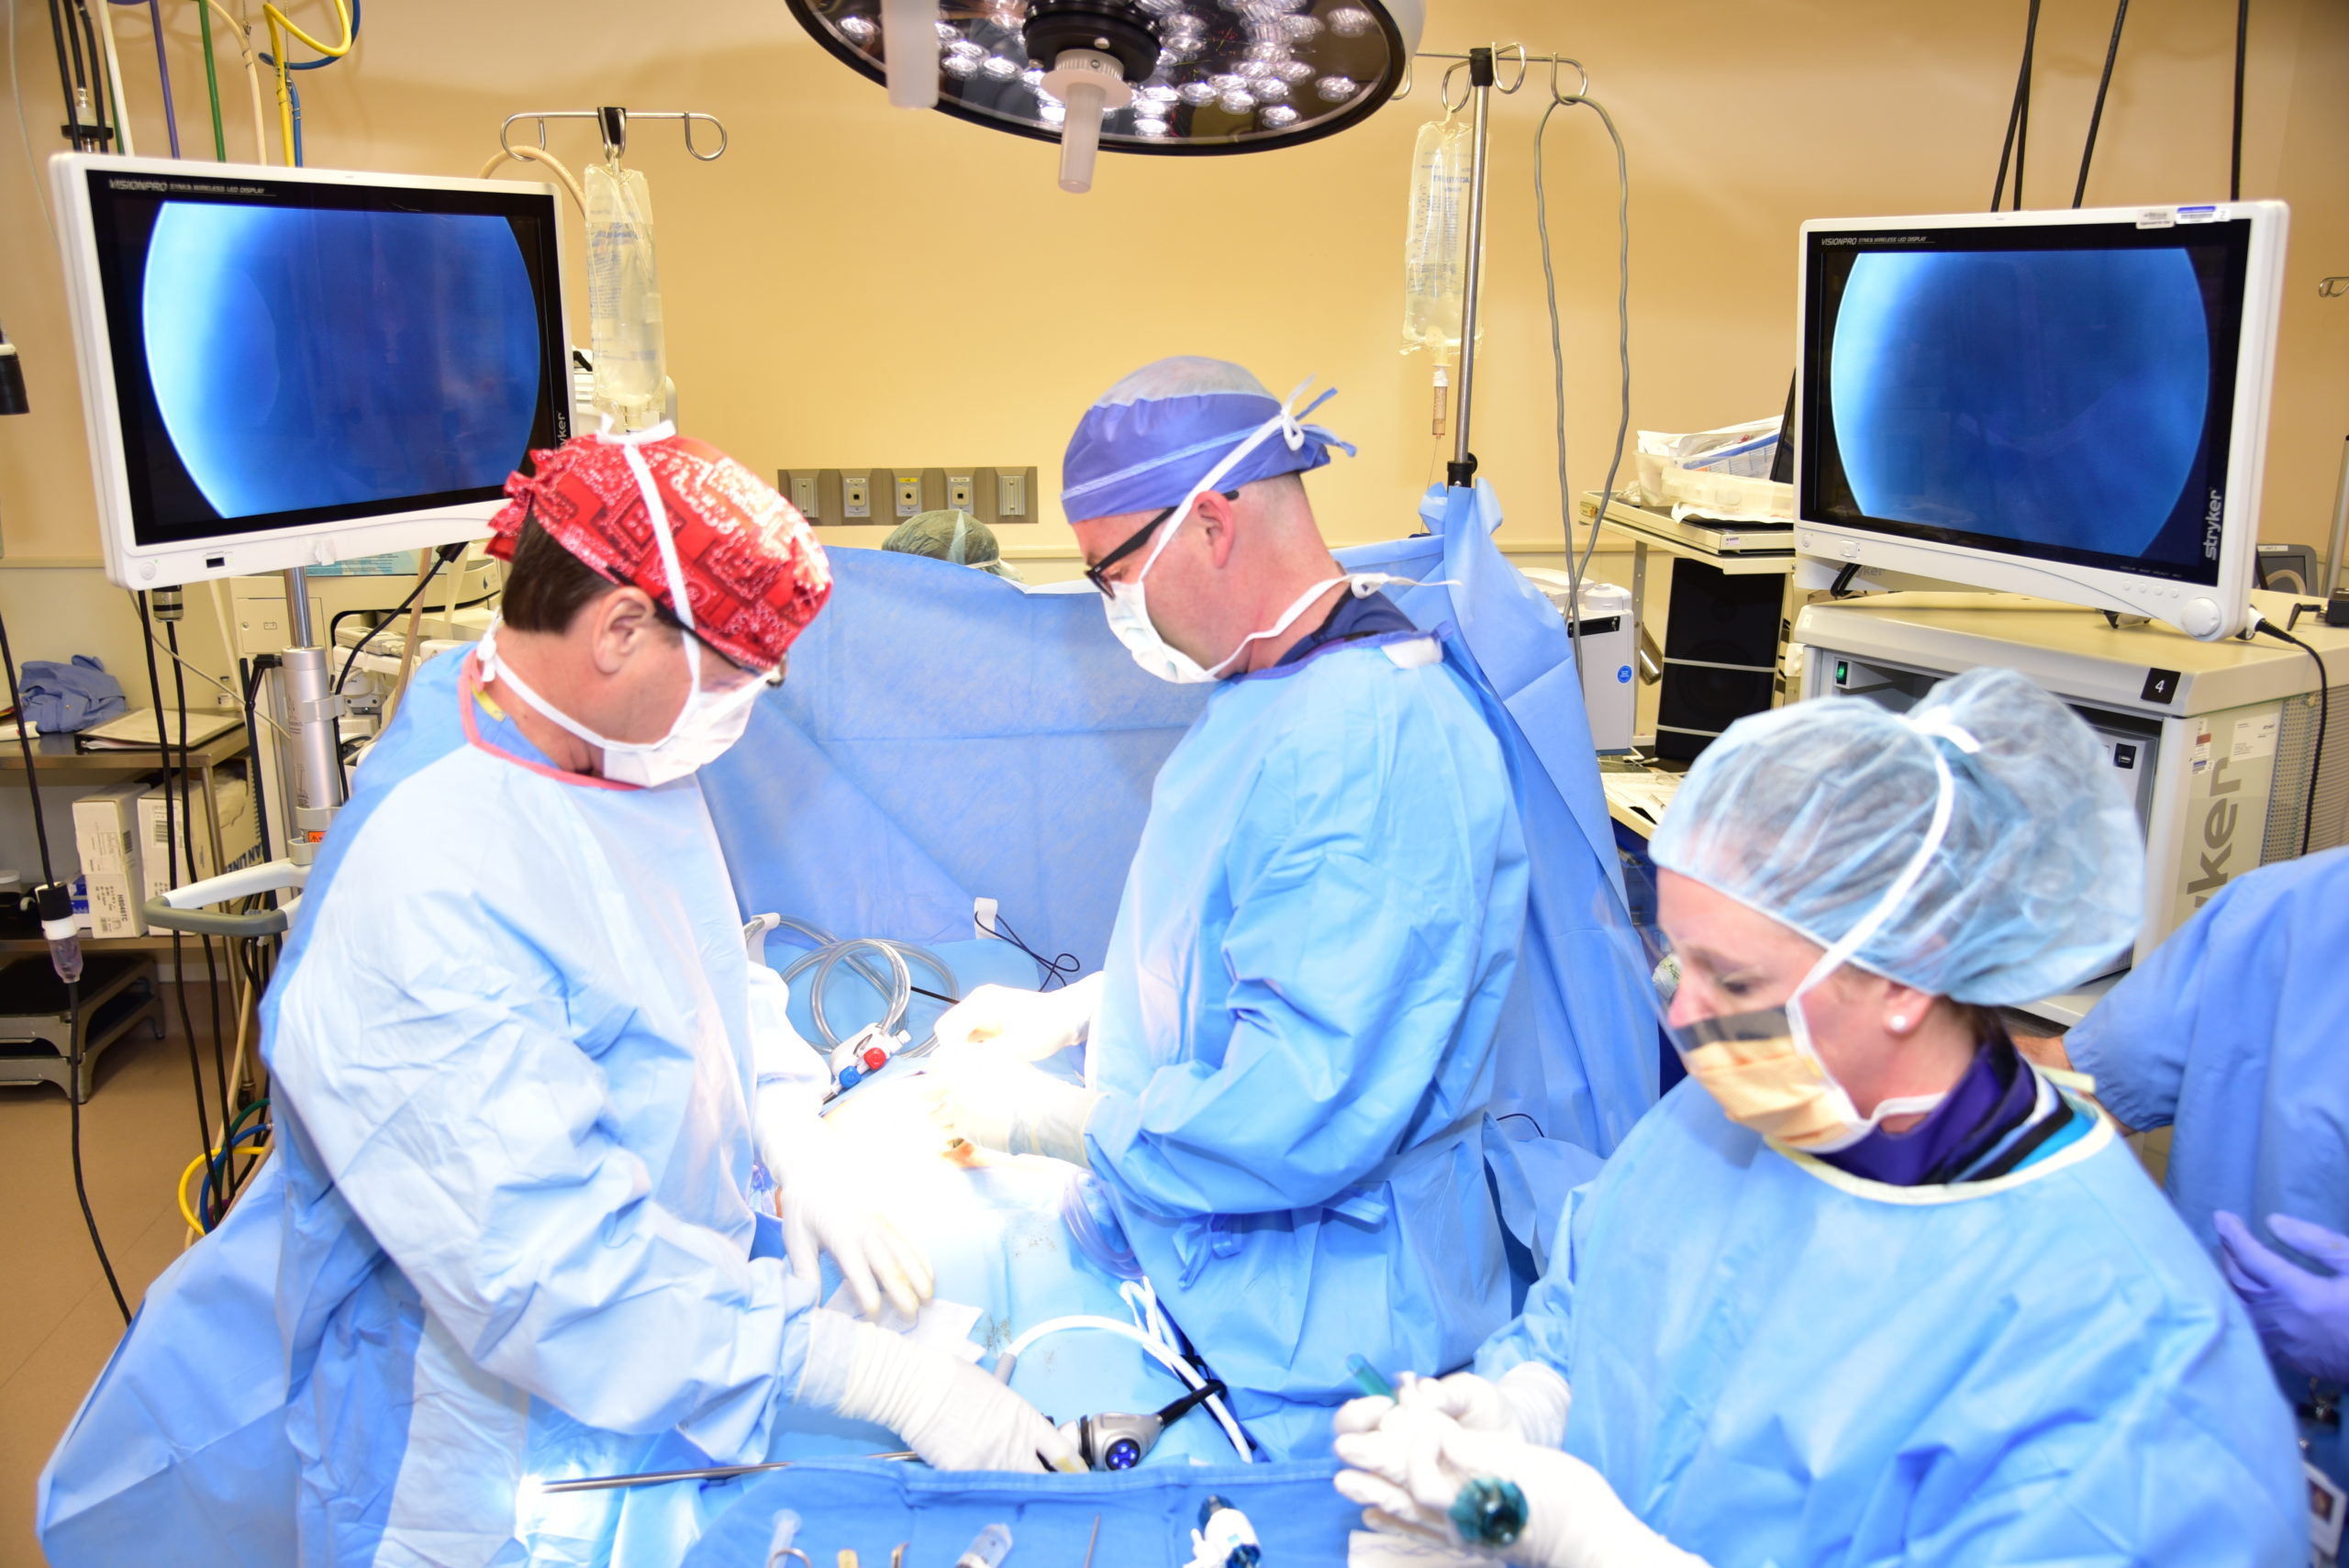 Doctors perform surgery on patient